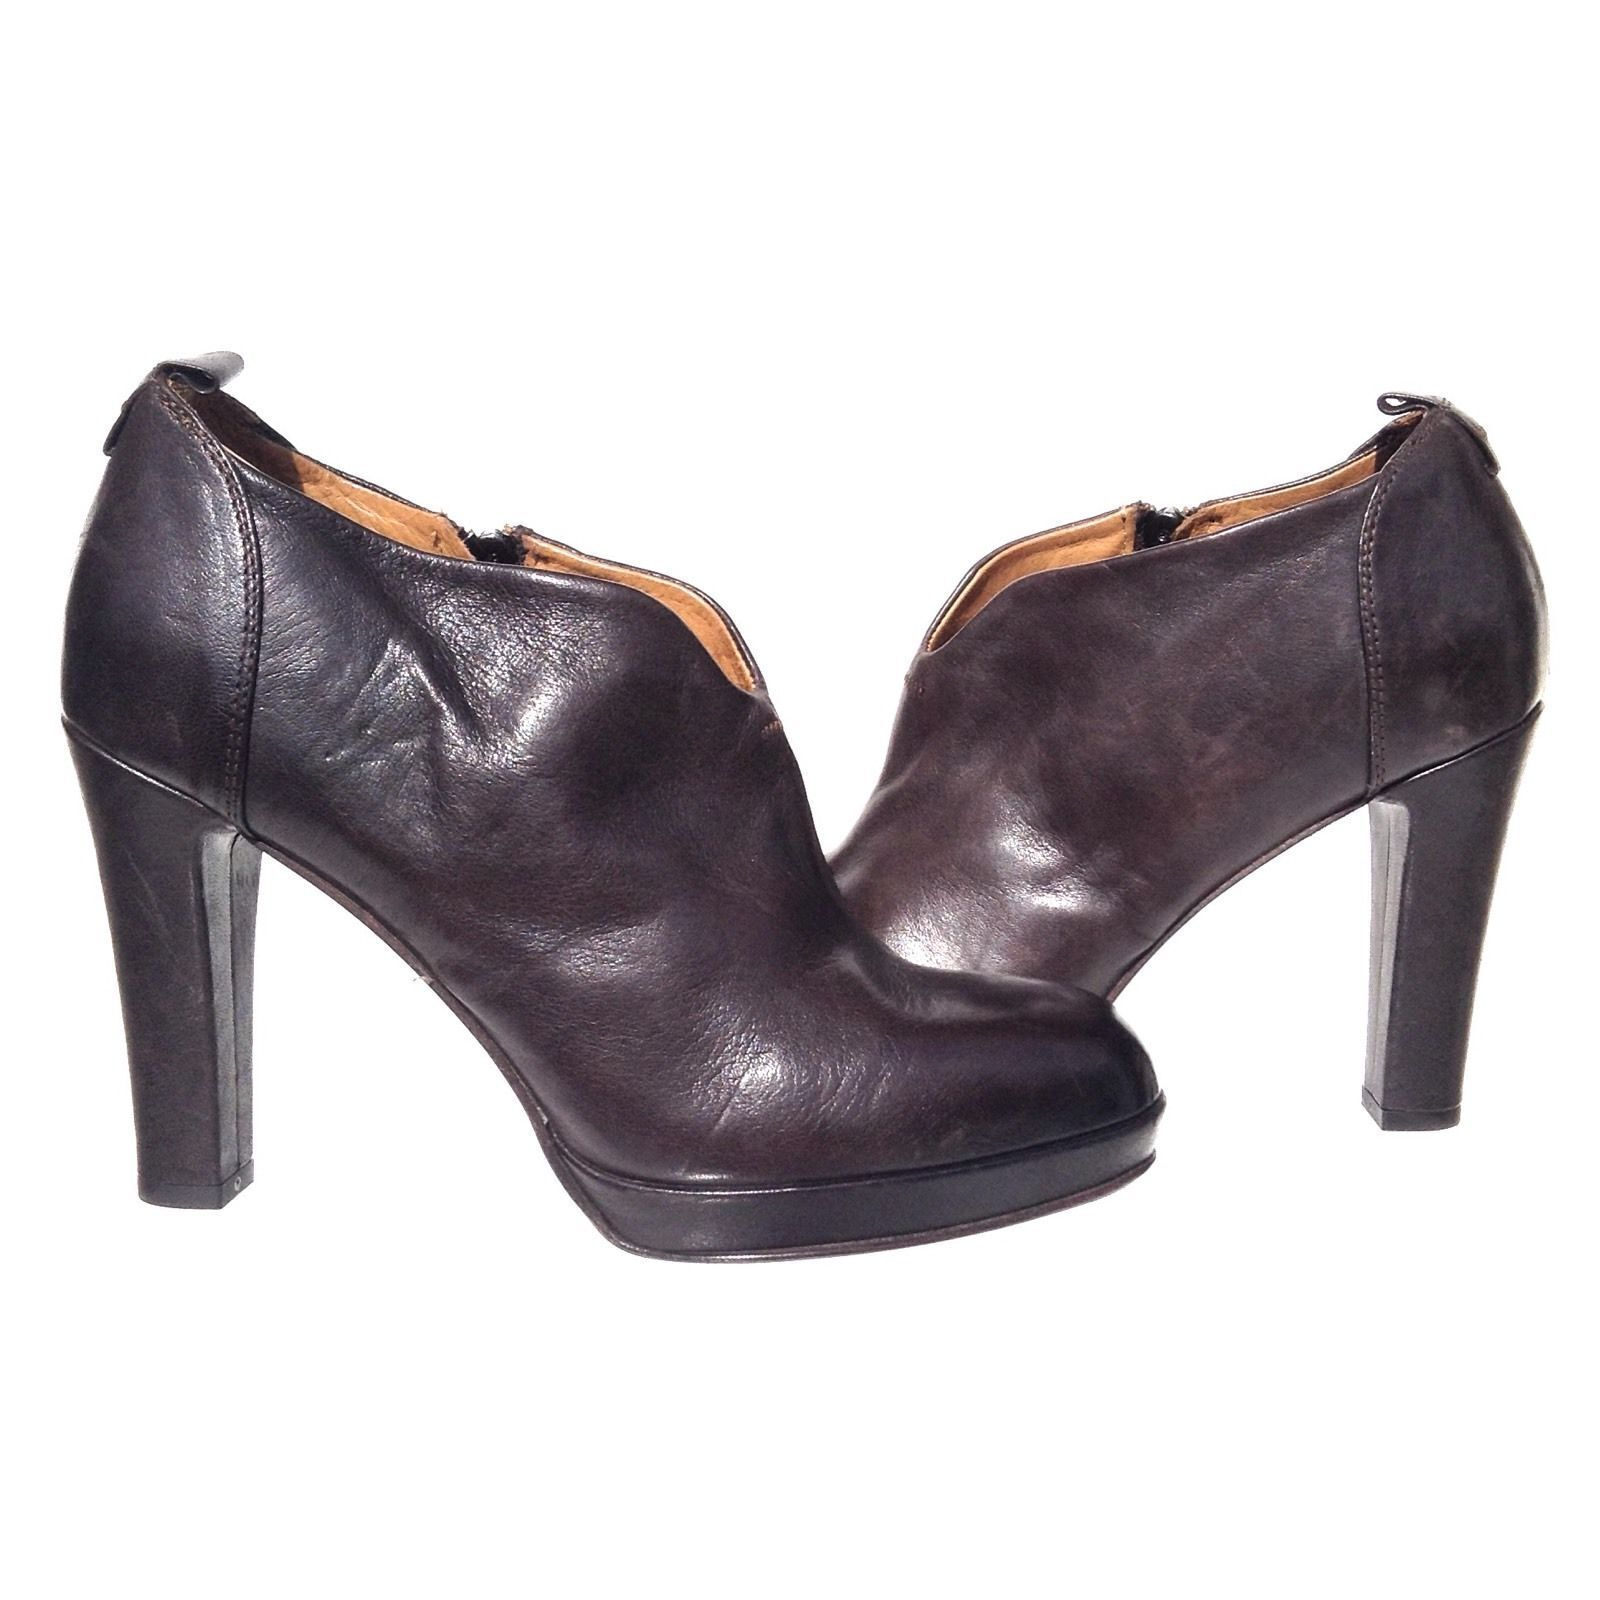 NEW   ALBERTO FERMANI  SZ 40.5 (10) Coffee All Leather Ankle Booties Boots Pumps